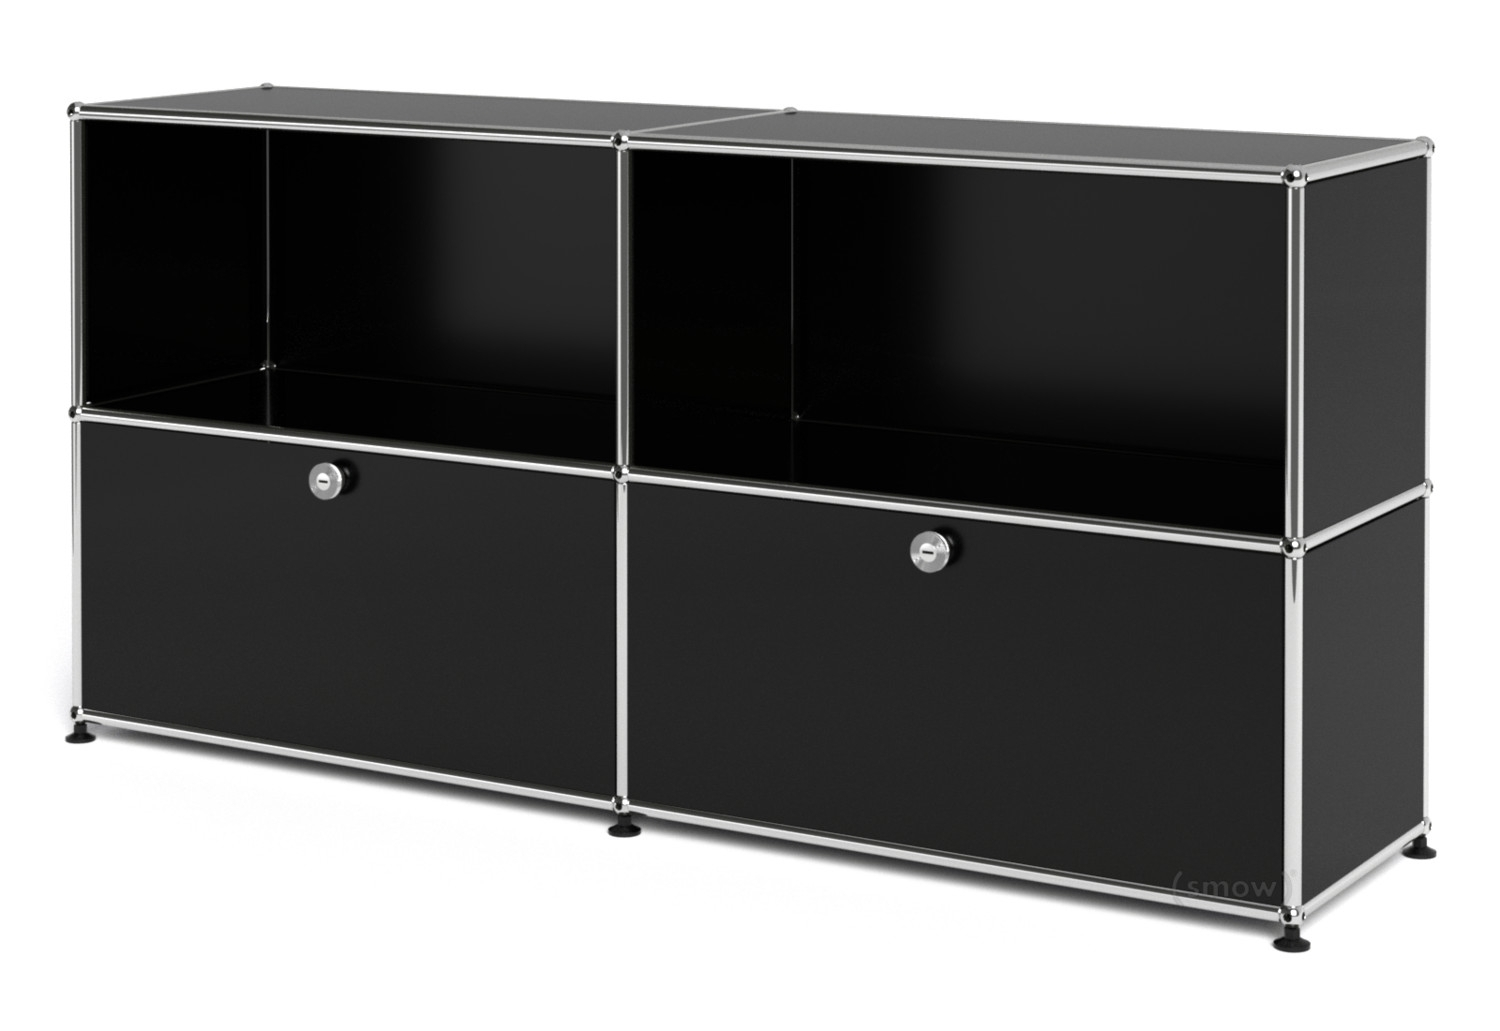 Usm Haller Sideboard L With 2 Drop-Down Doorsfritz Haller & Paul for Girard 4 Door Sideboards (Image 25 of 30)